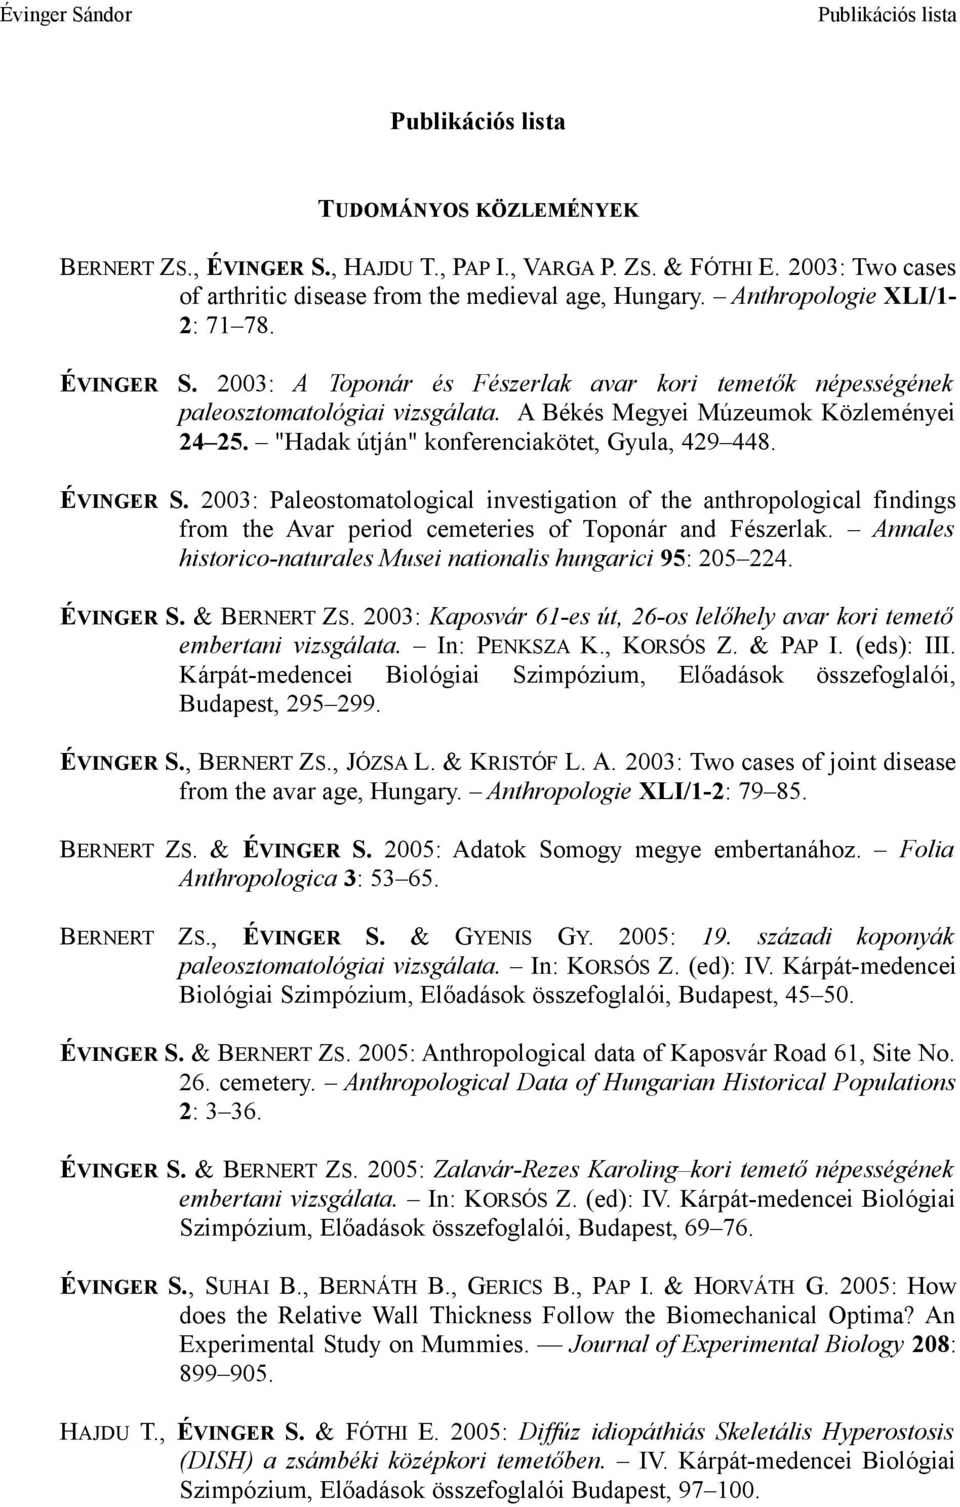 2003: Paleostomatological investigation of the anthropological findings from the Avar period cemeteries of Toponár and Fészerlak. Annales historico-naturales Musei nationalis hungarici 95: 205 224.